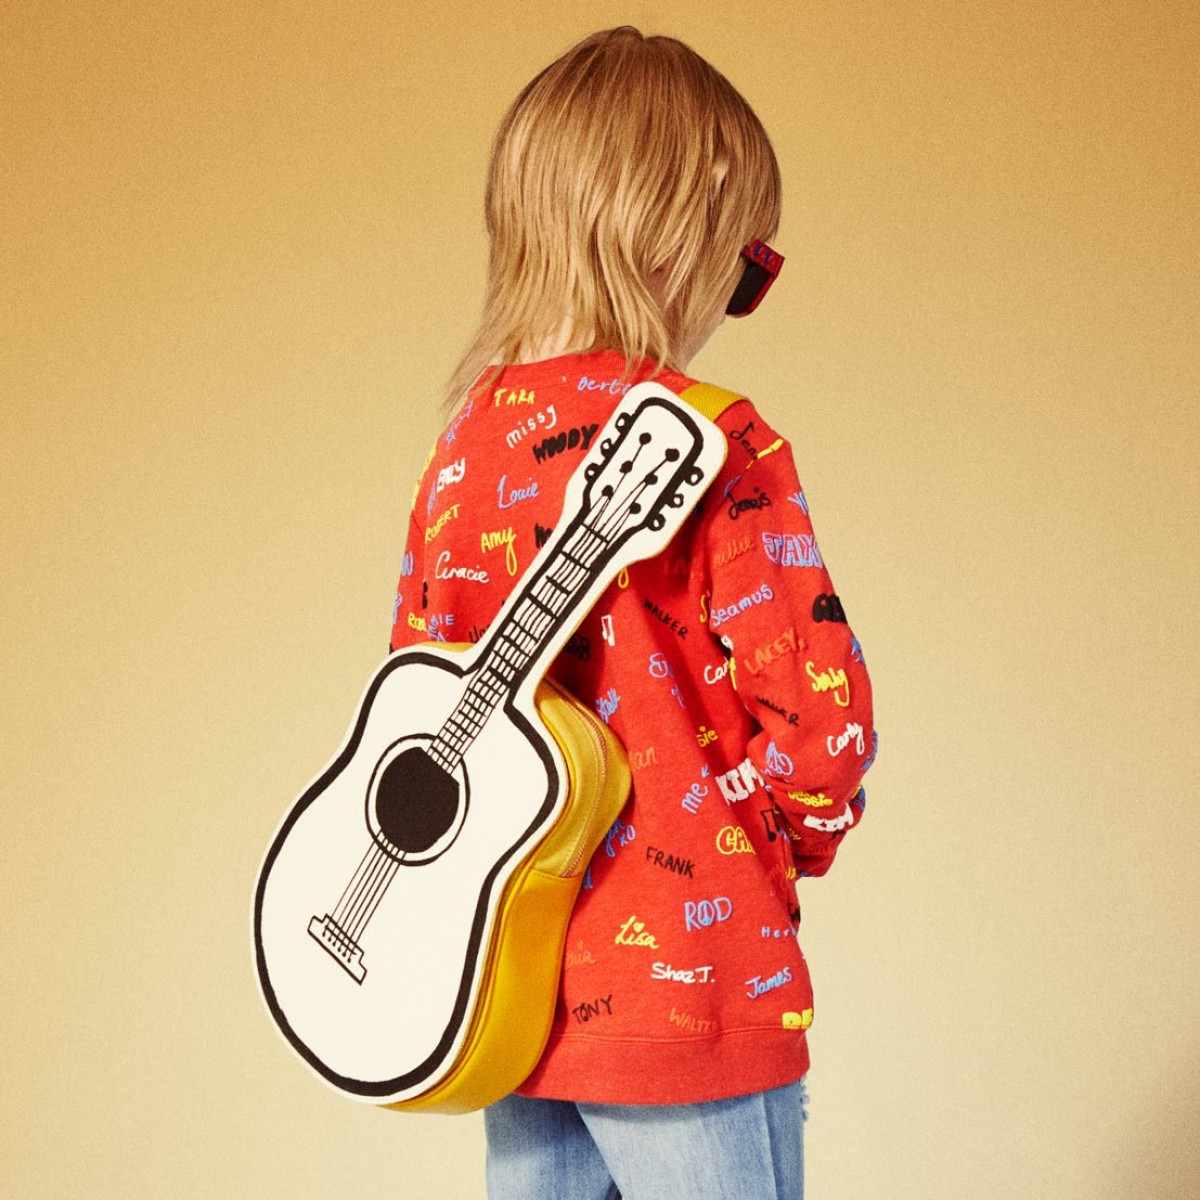 Apparently there are air guitar championships at Camp Bestival this year. Photo above: Stella McCartney Guitar Bag